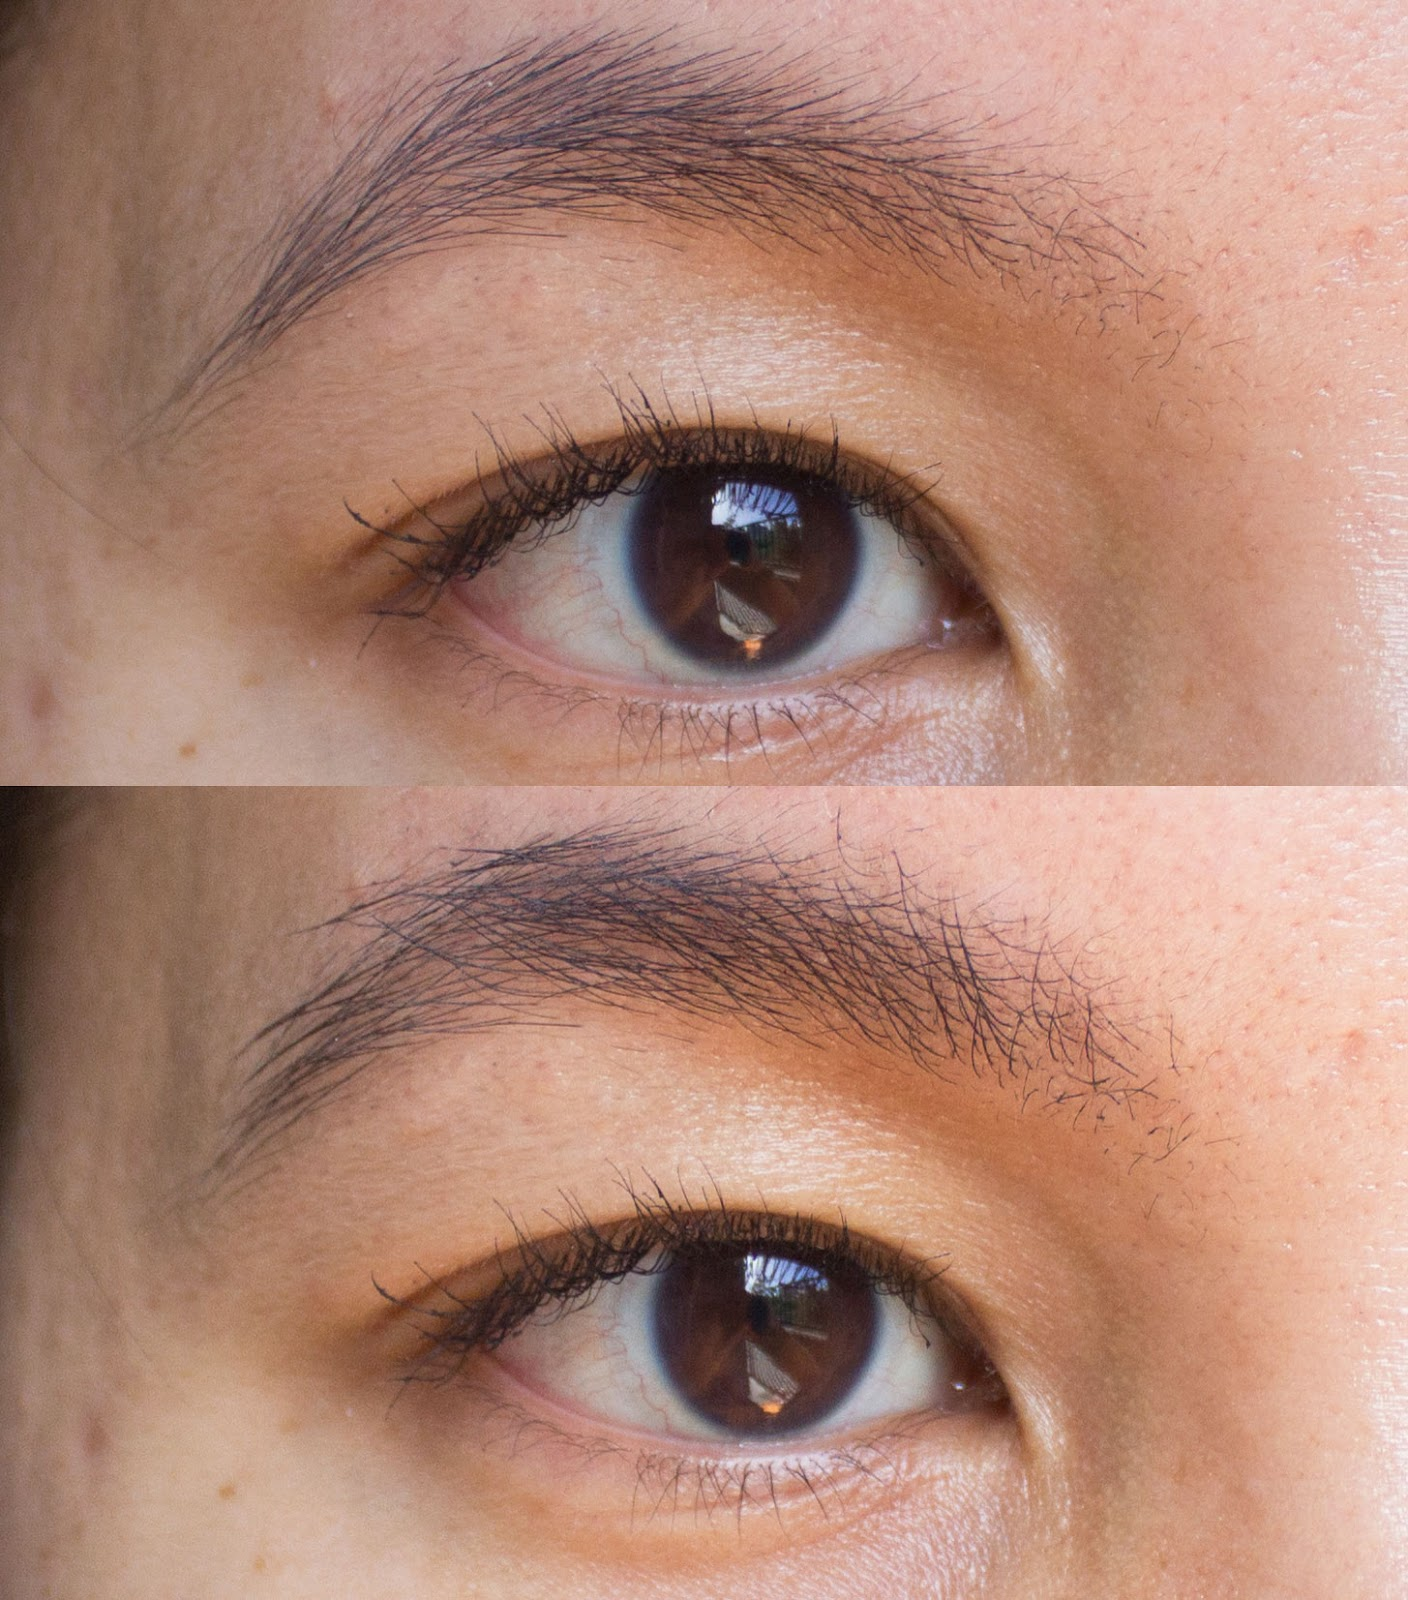 glossier boy brow in black review and before after portrait of mai